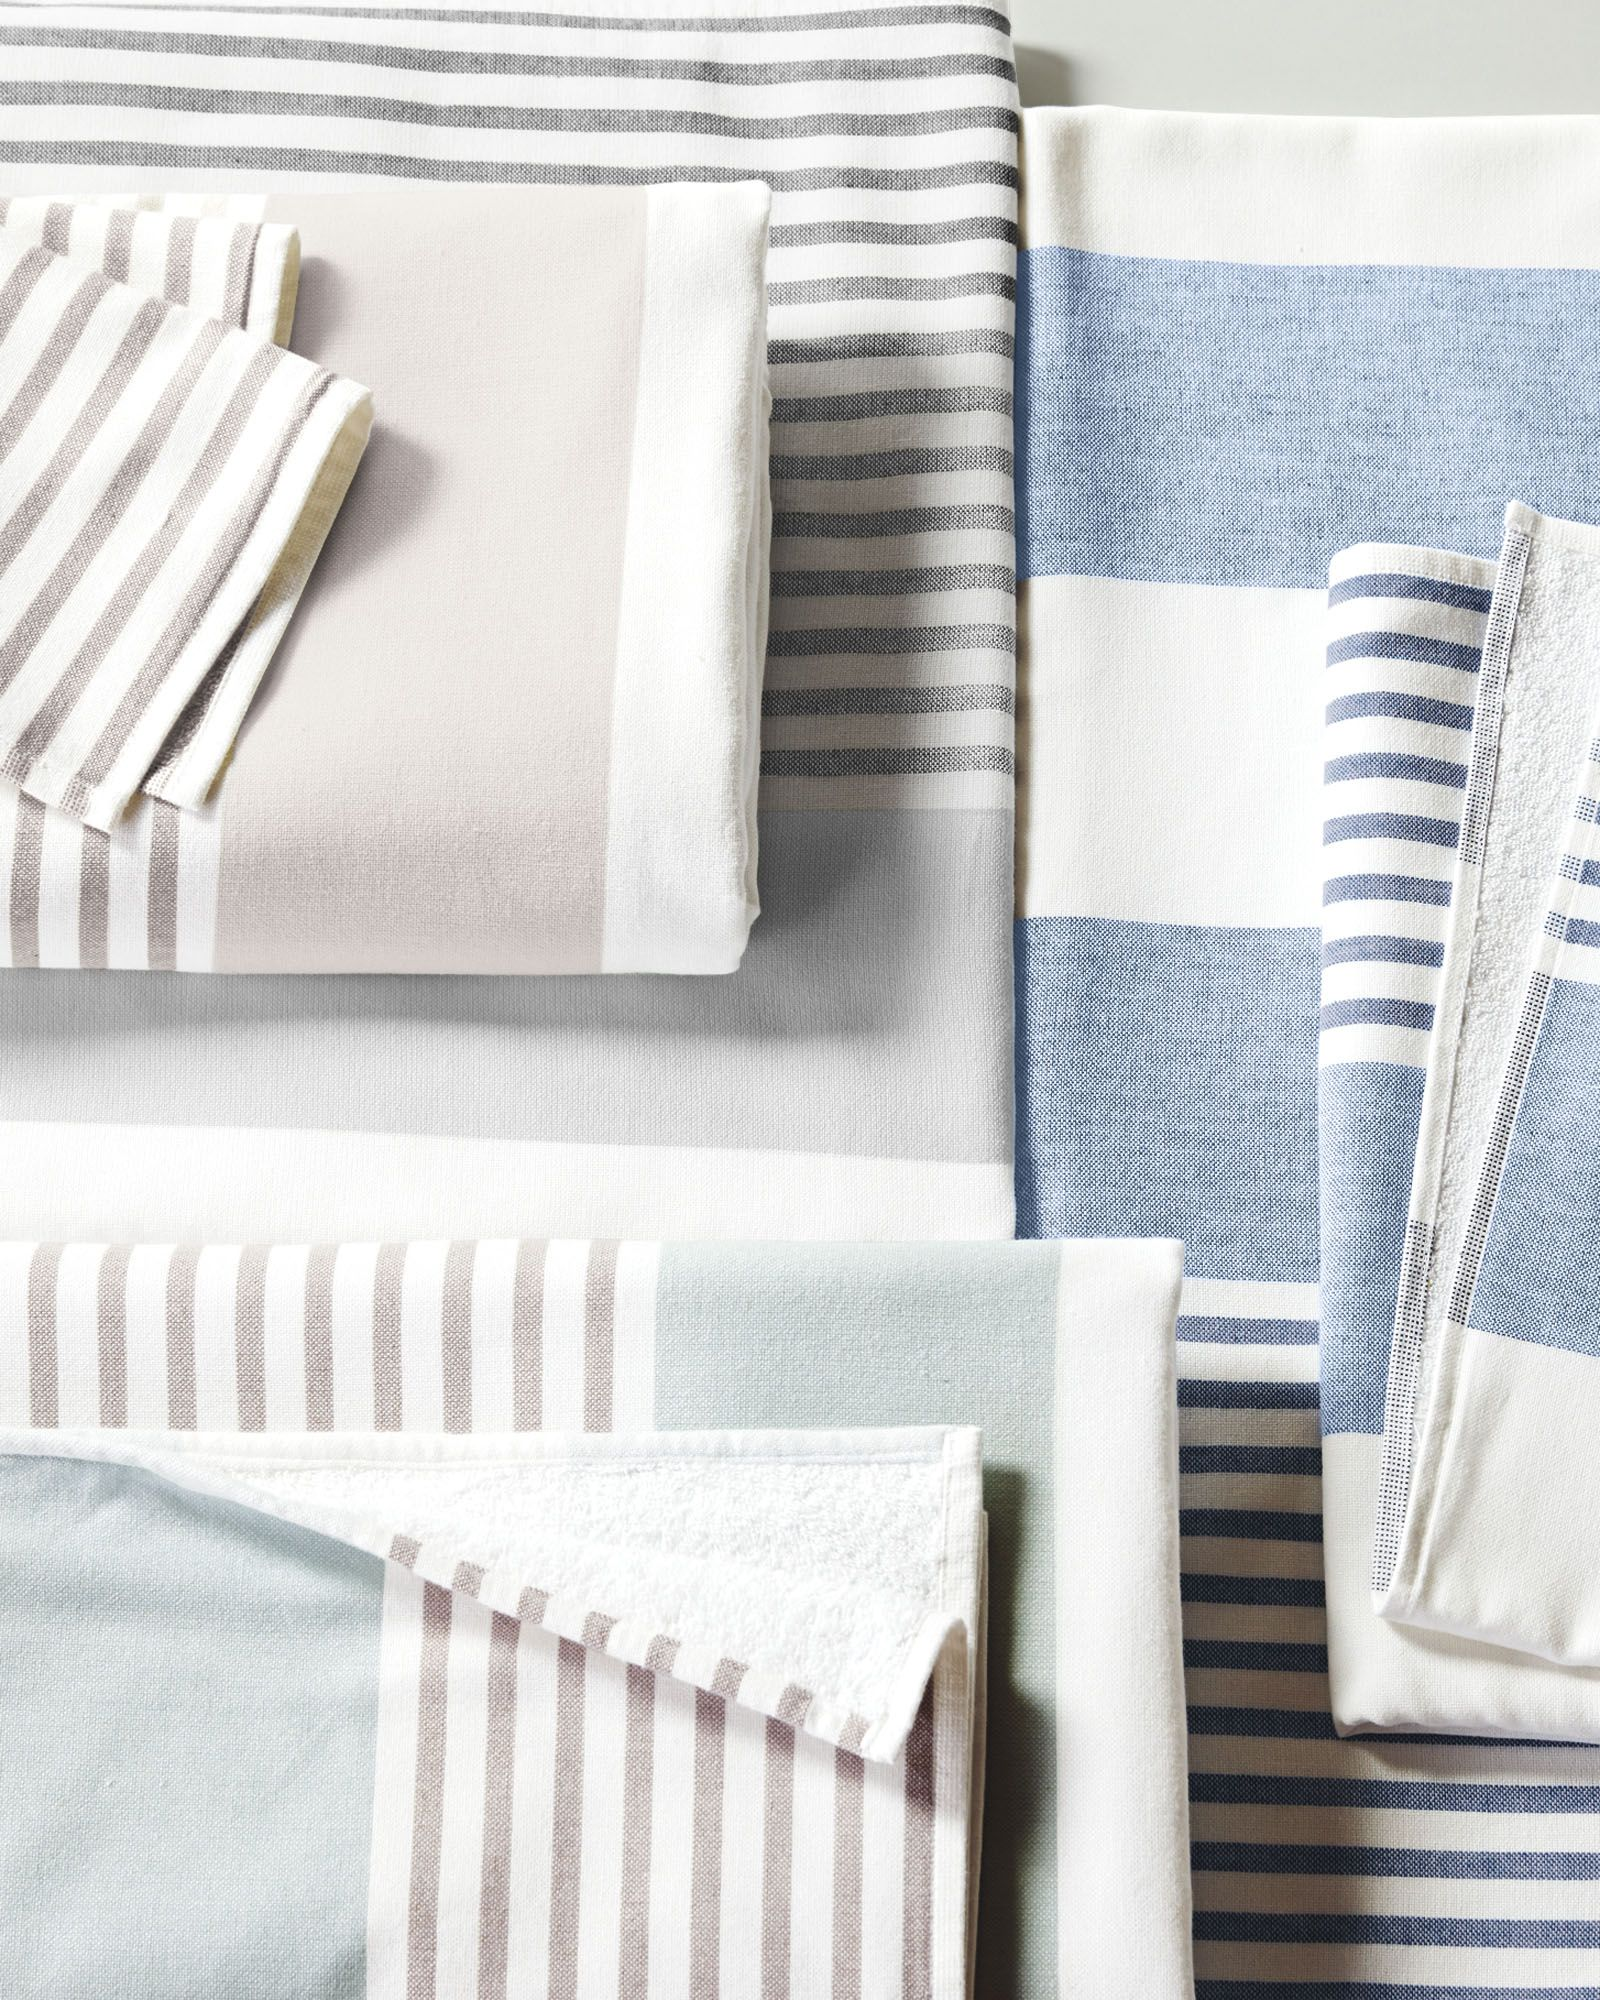 d9d6d2bcca The Fouta Bath Towels - Collection - Bathroom - Image via  serenaandlily